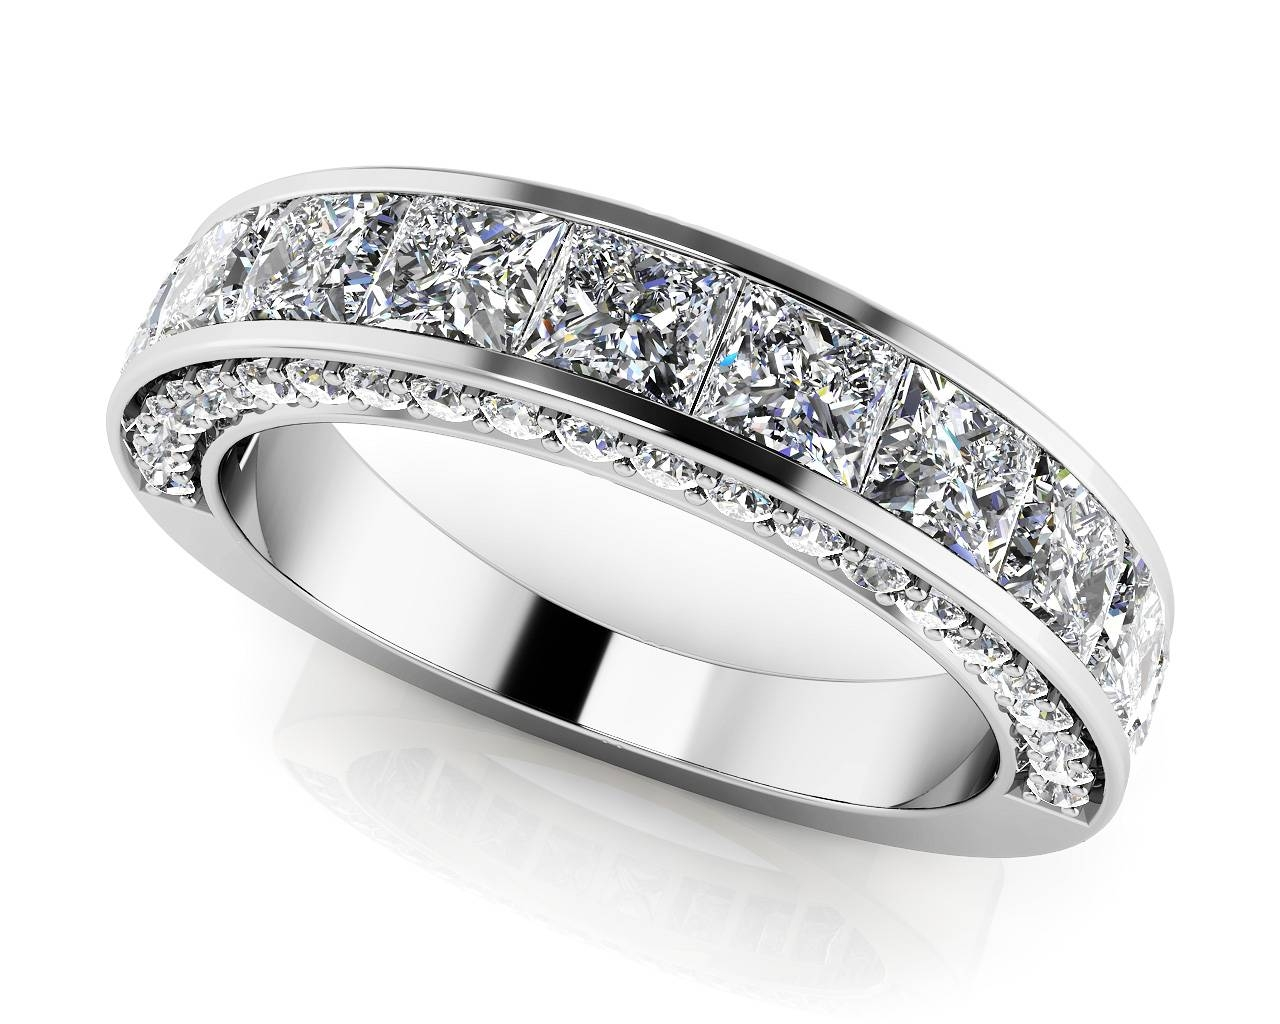 Design Your Own Diamond Anniversary Ring & Eternity Ring In Most Popular 25Th Anniversary Rings For Her (View 8 of 25)